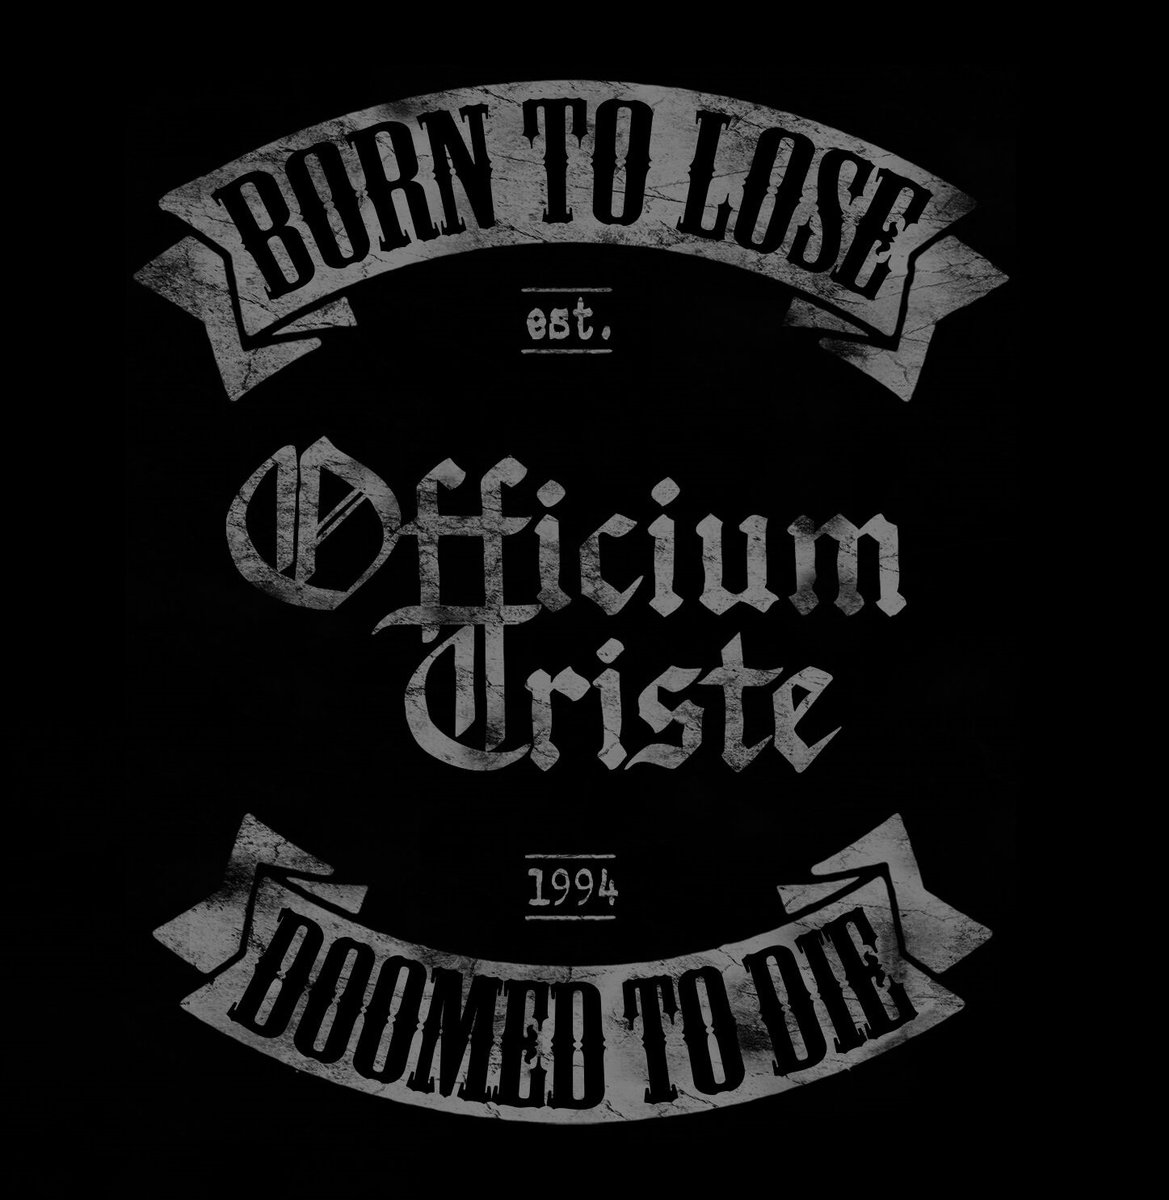 Officium Triste - Born to Lose, Doomed t